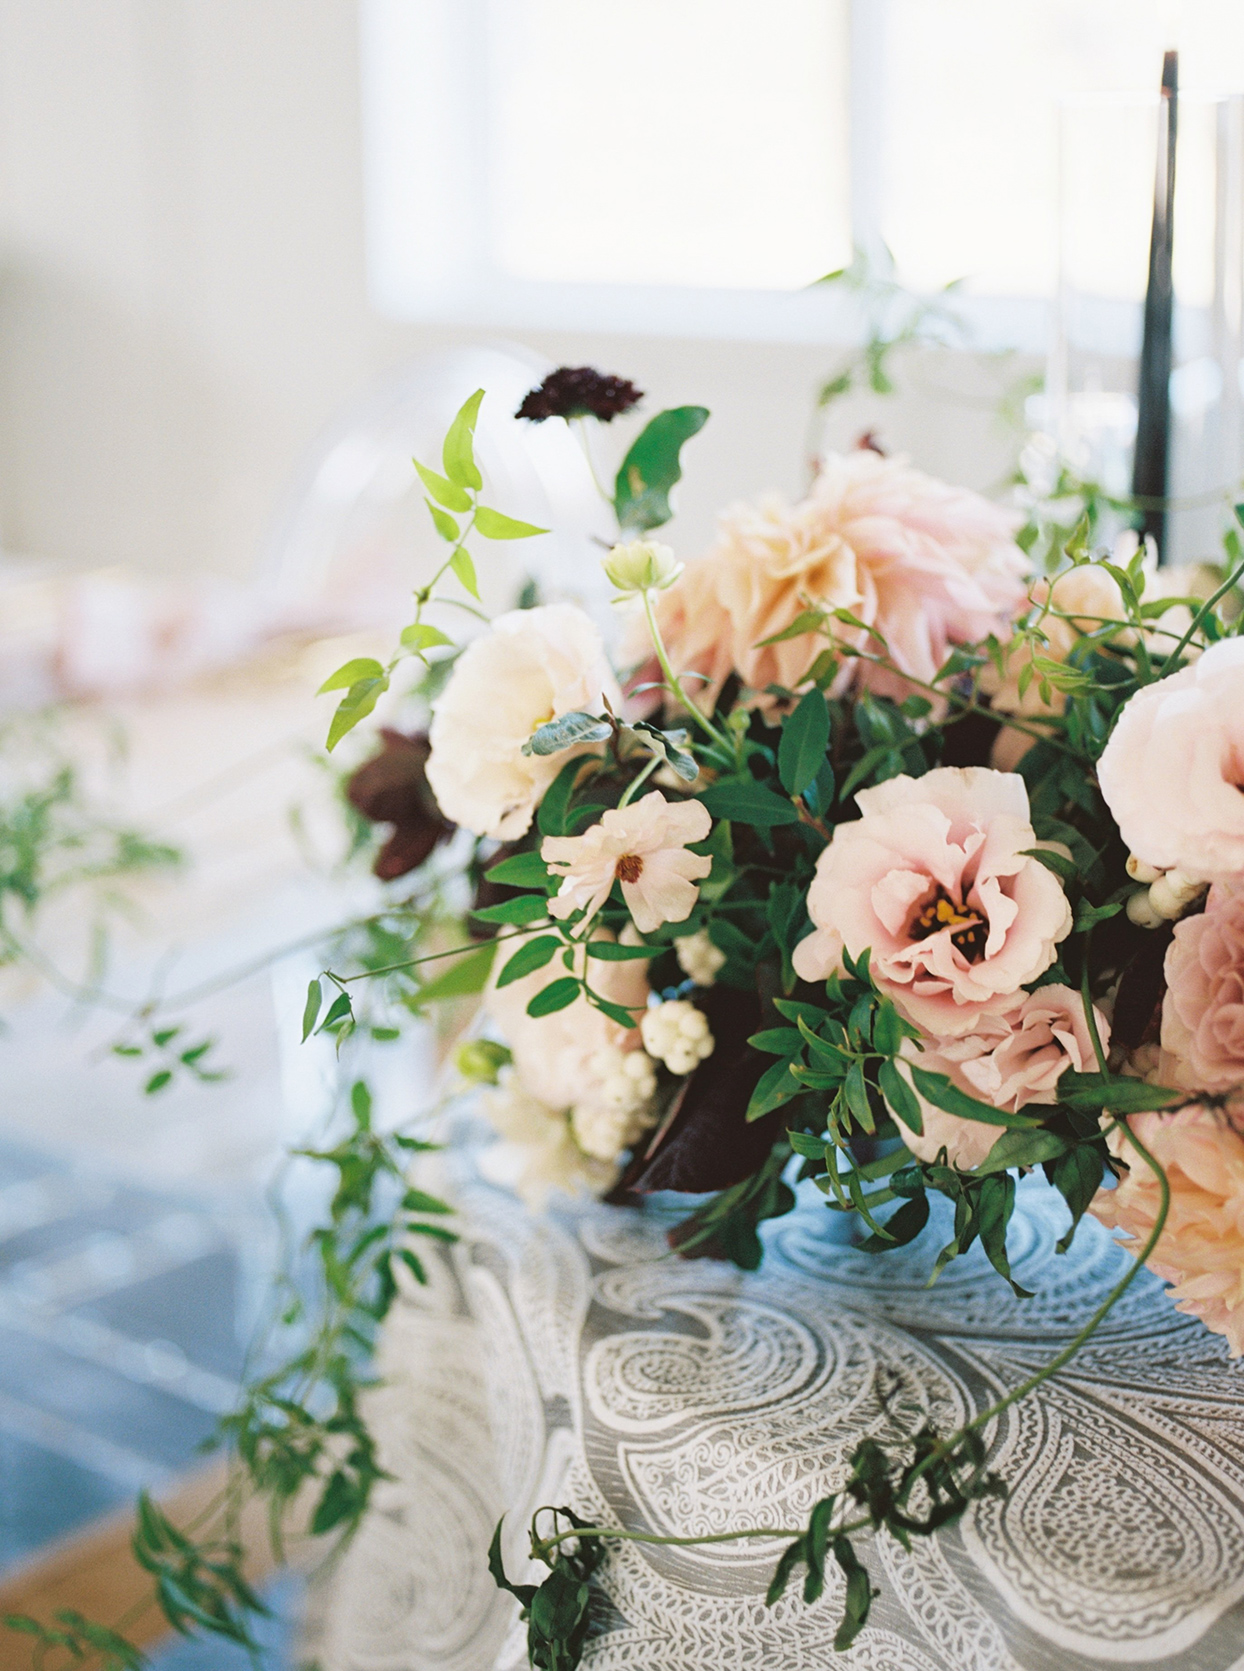 Low floral arrangement of blush, mauve, and ivory blooms accented by dark green and black foliage